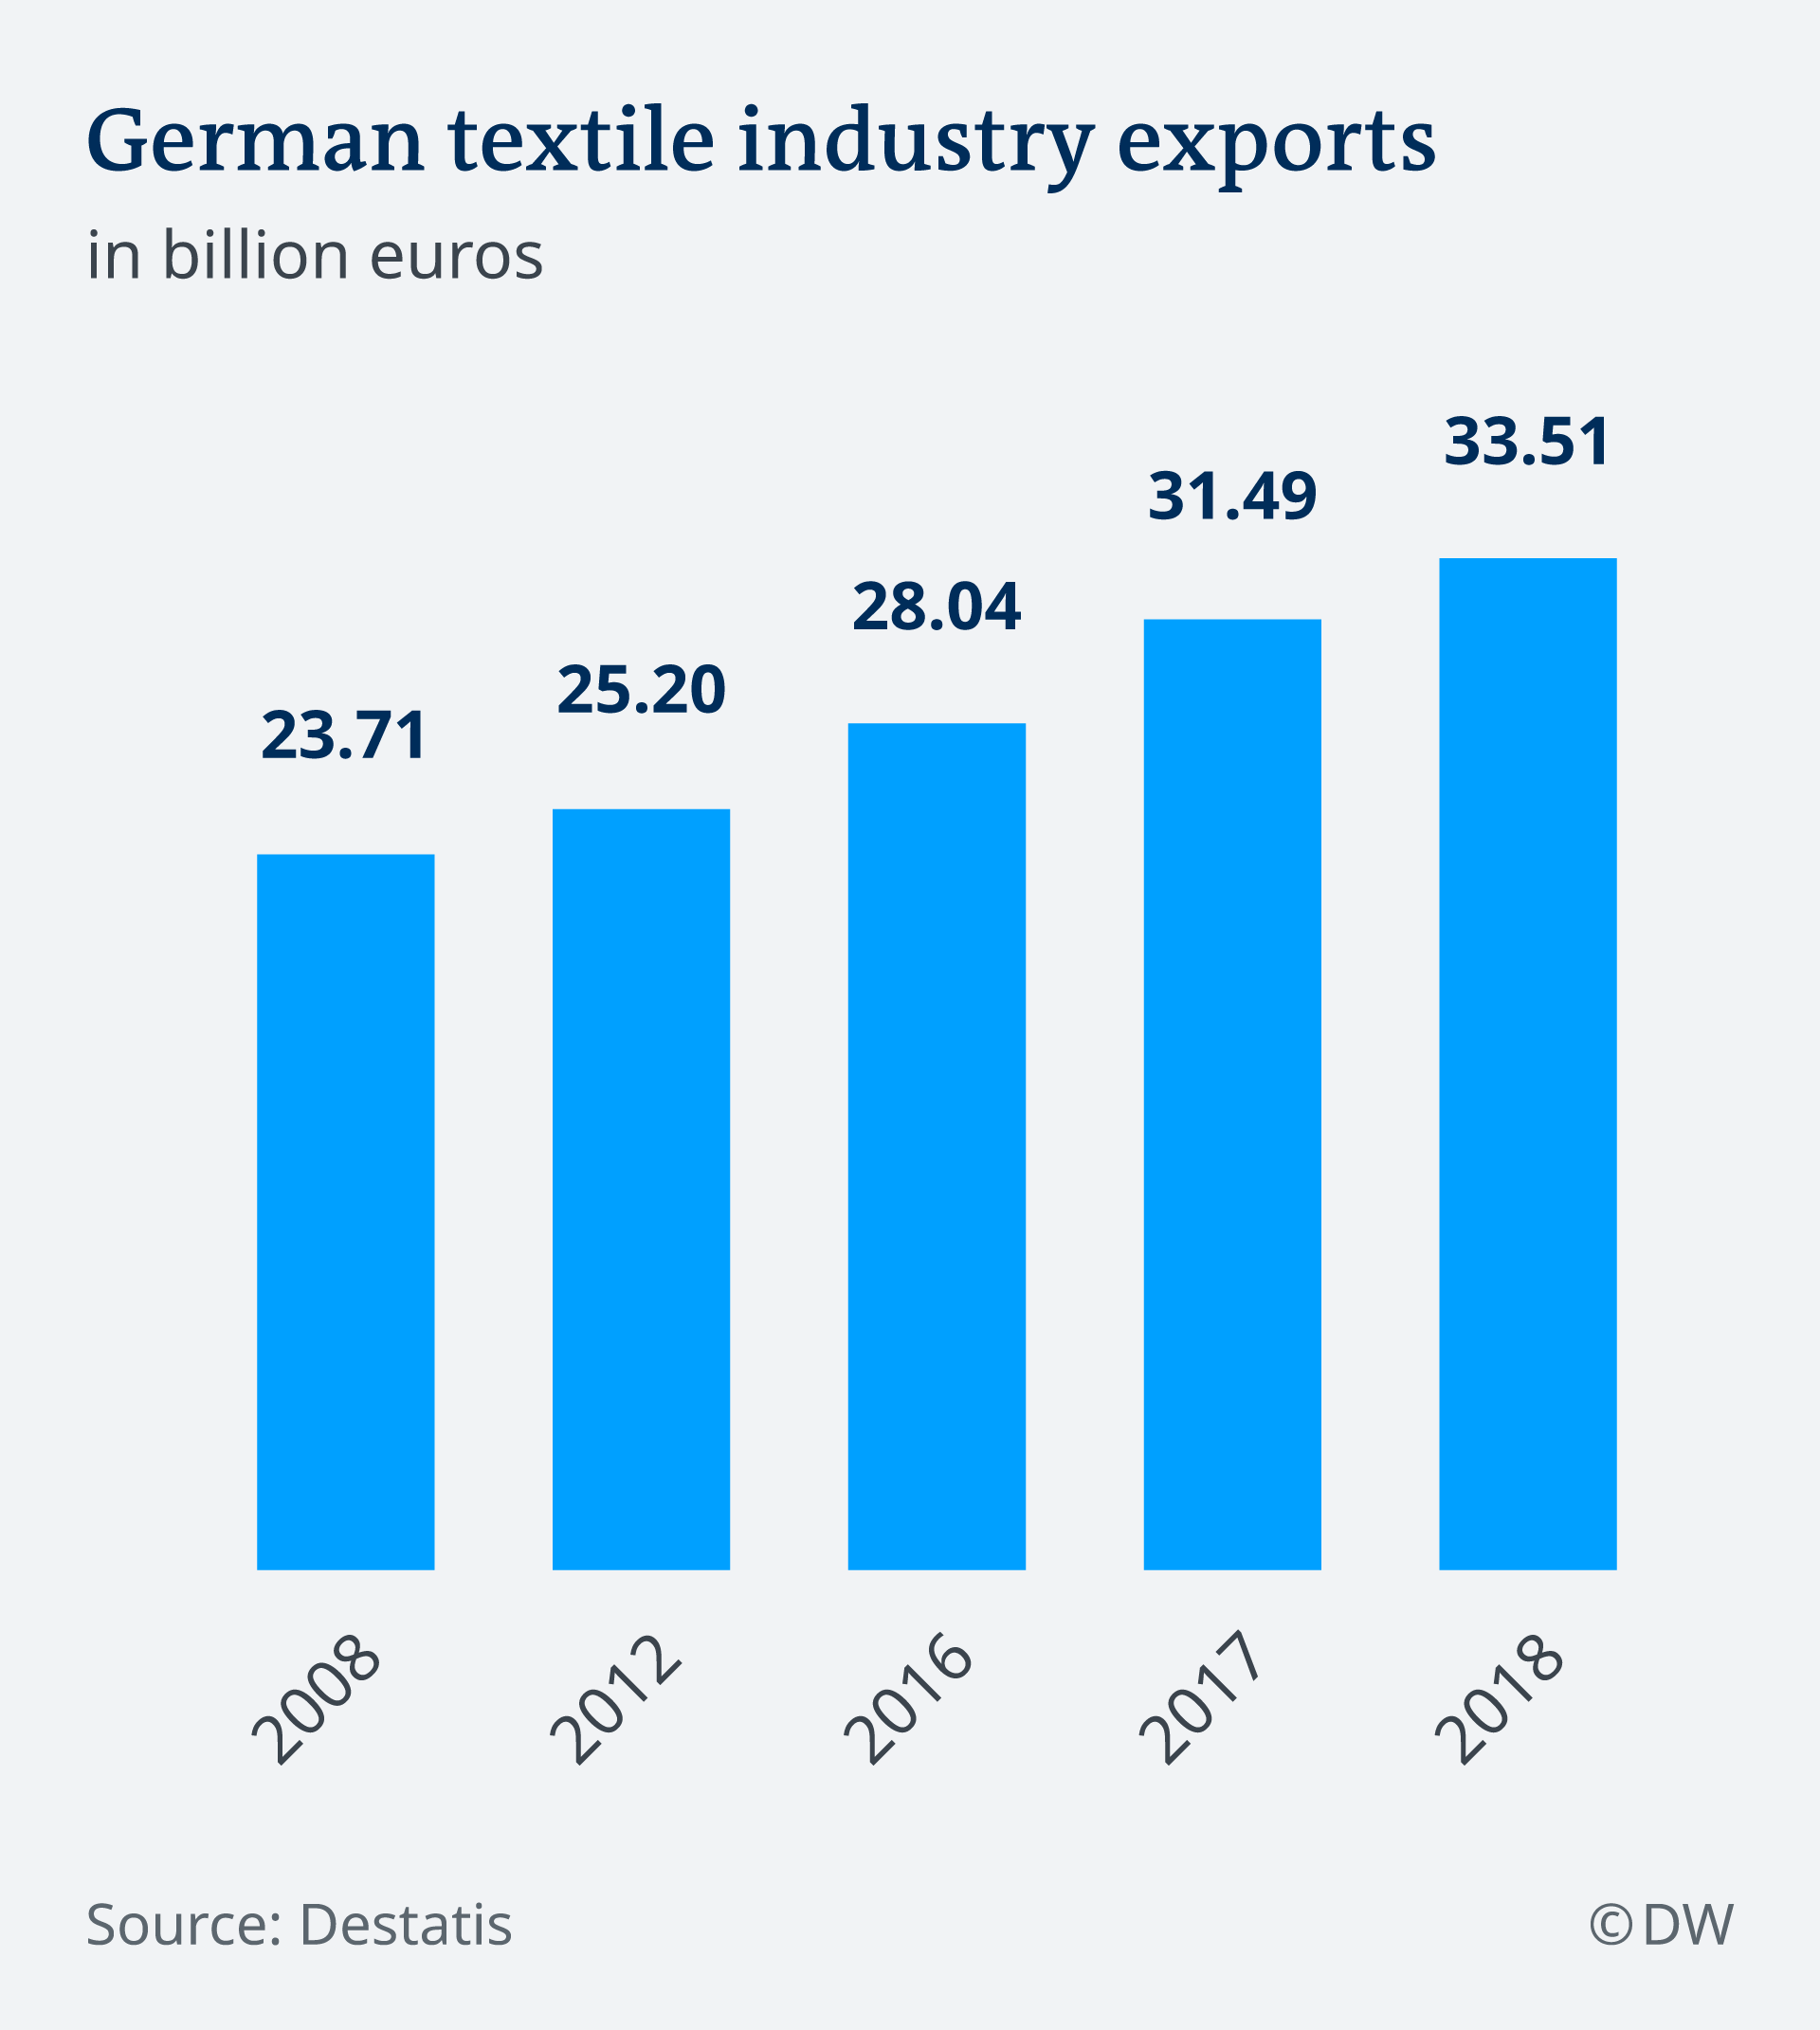 German textile industry exports